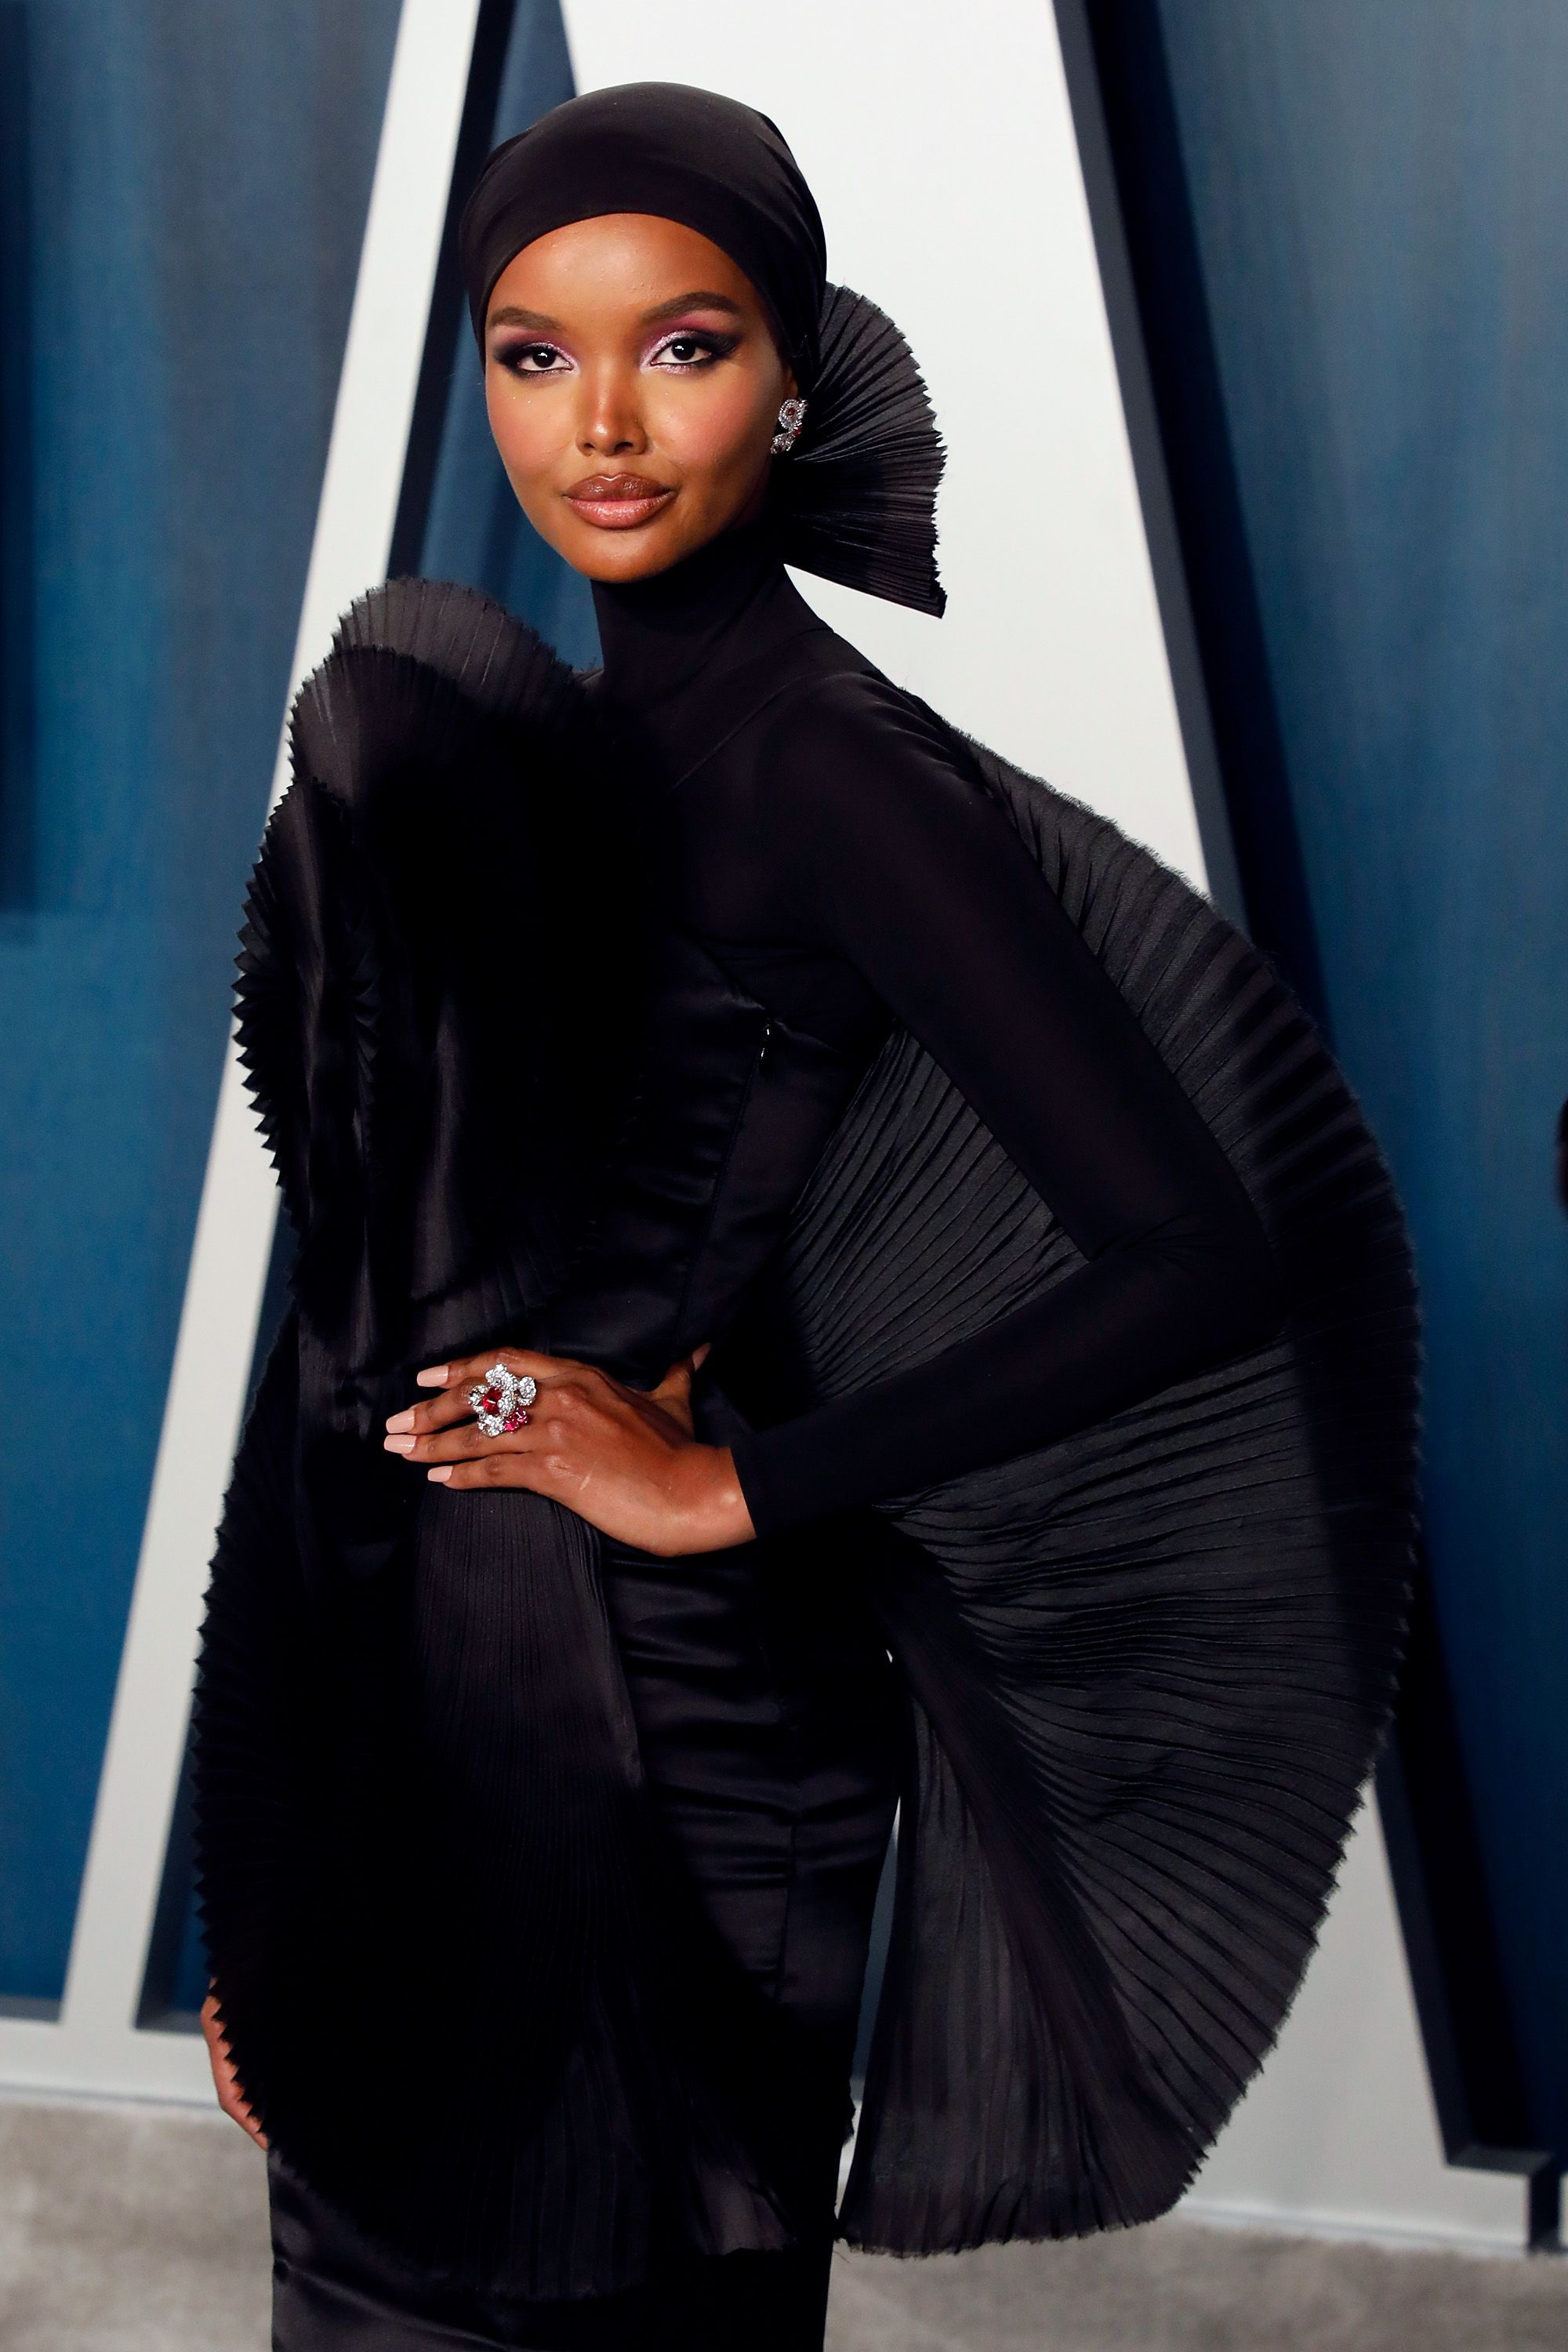 Halima Aden on Navigating the Fashion Industry on Her Own Terms